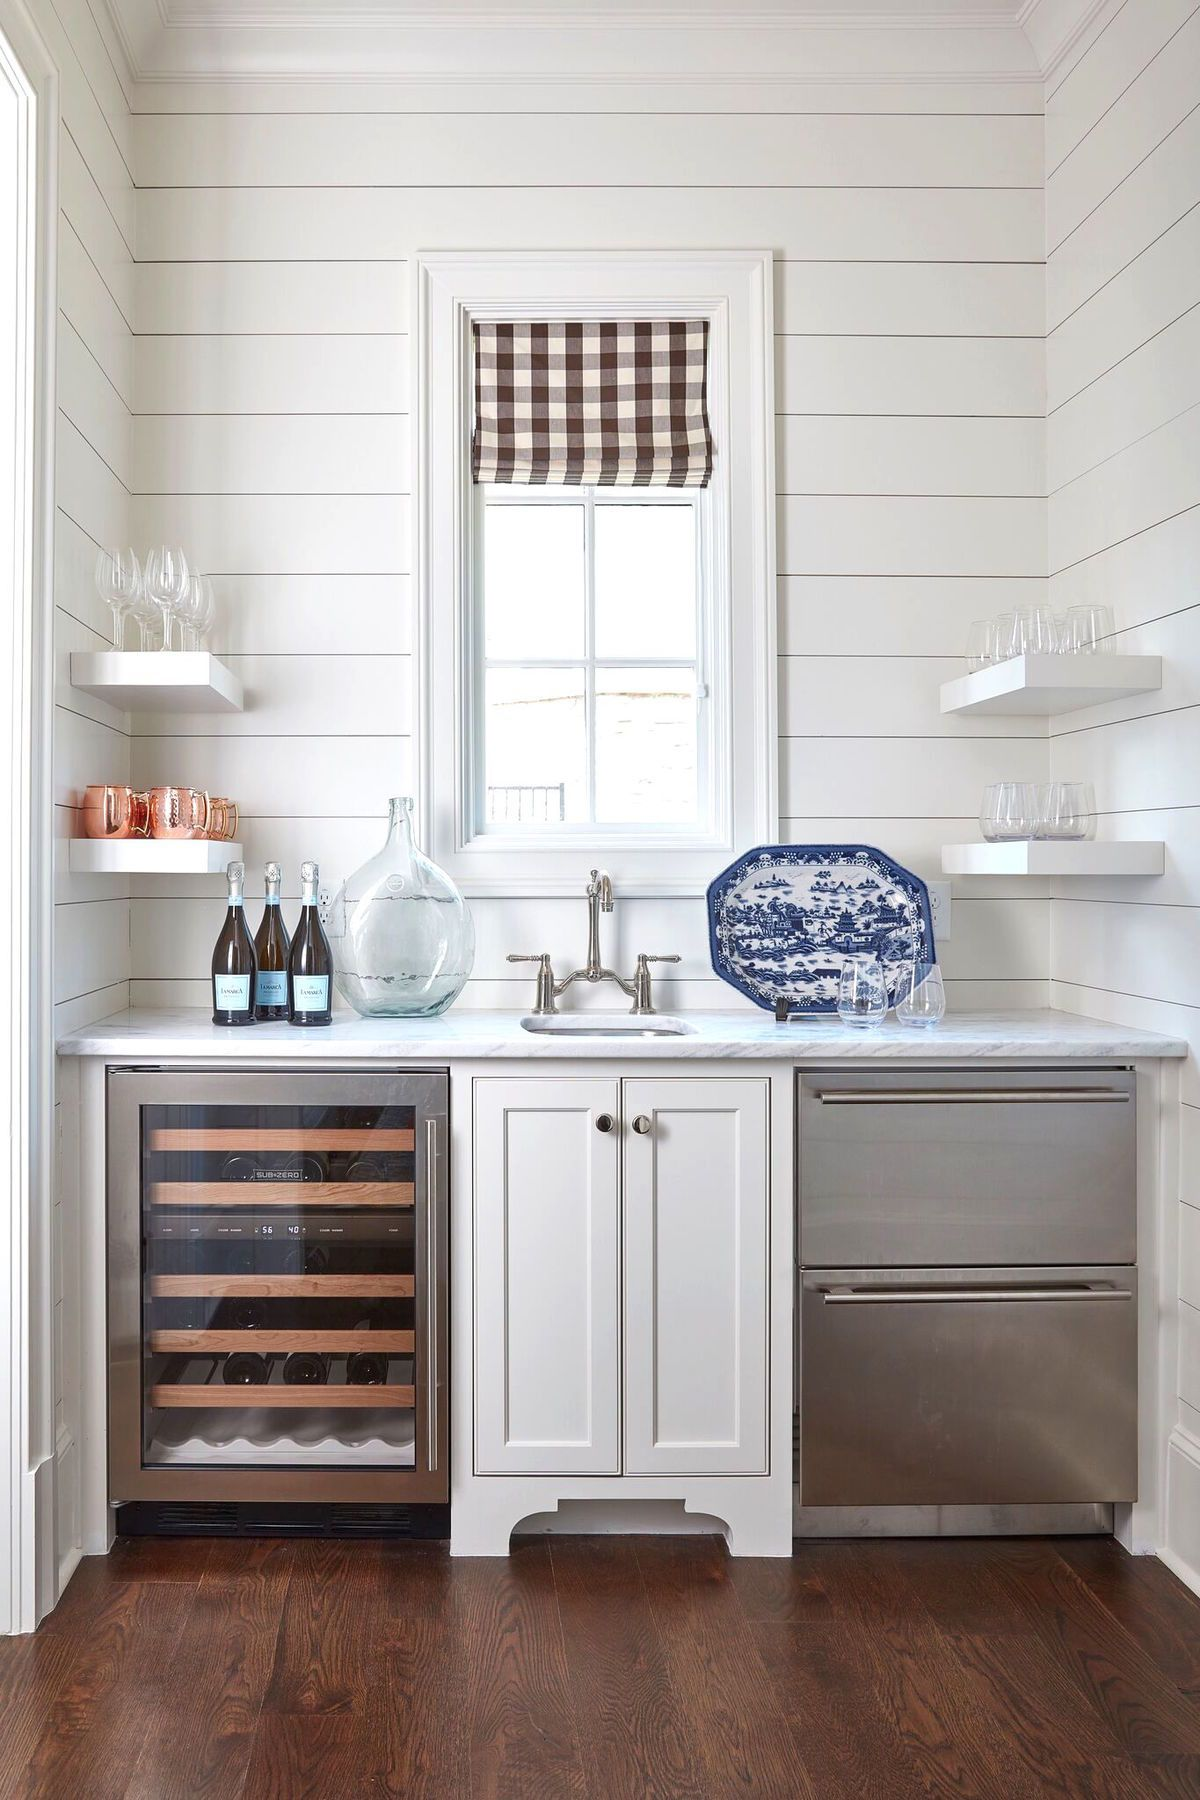 Lake House Chic: A Beautiful Second Home is the Perfect Escape | Bar ...